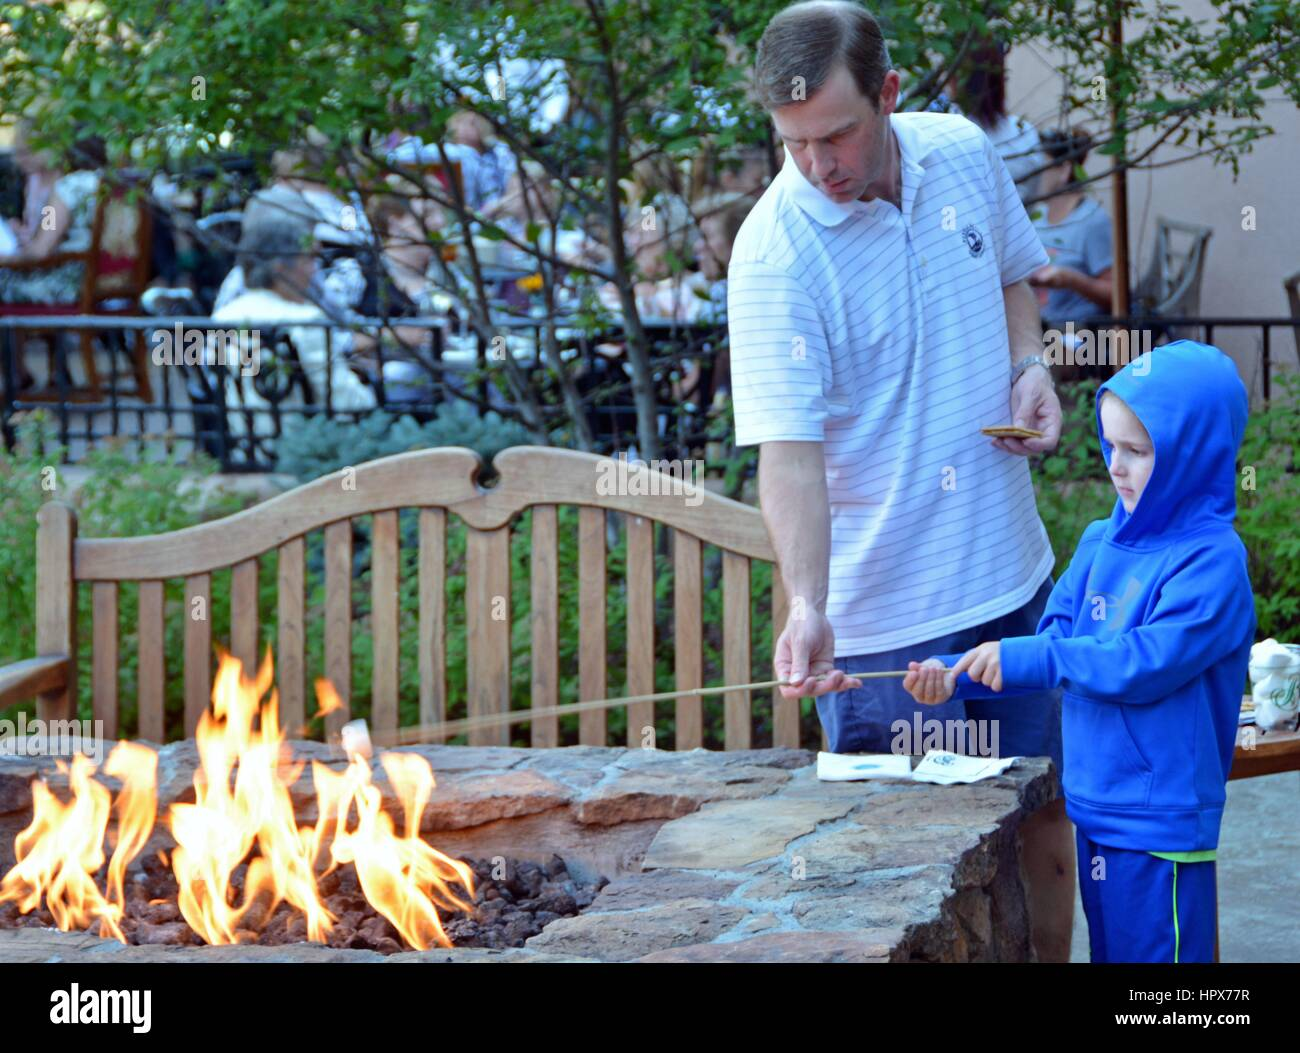 Unidentified people roasting Marshmallows. - Stock Image